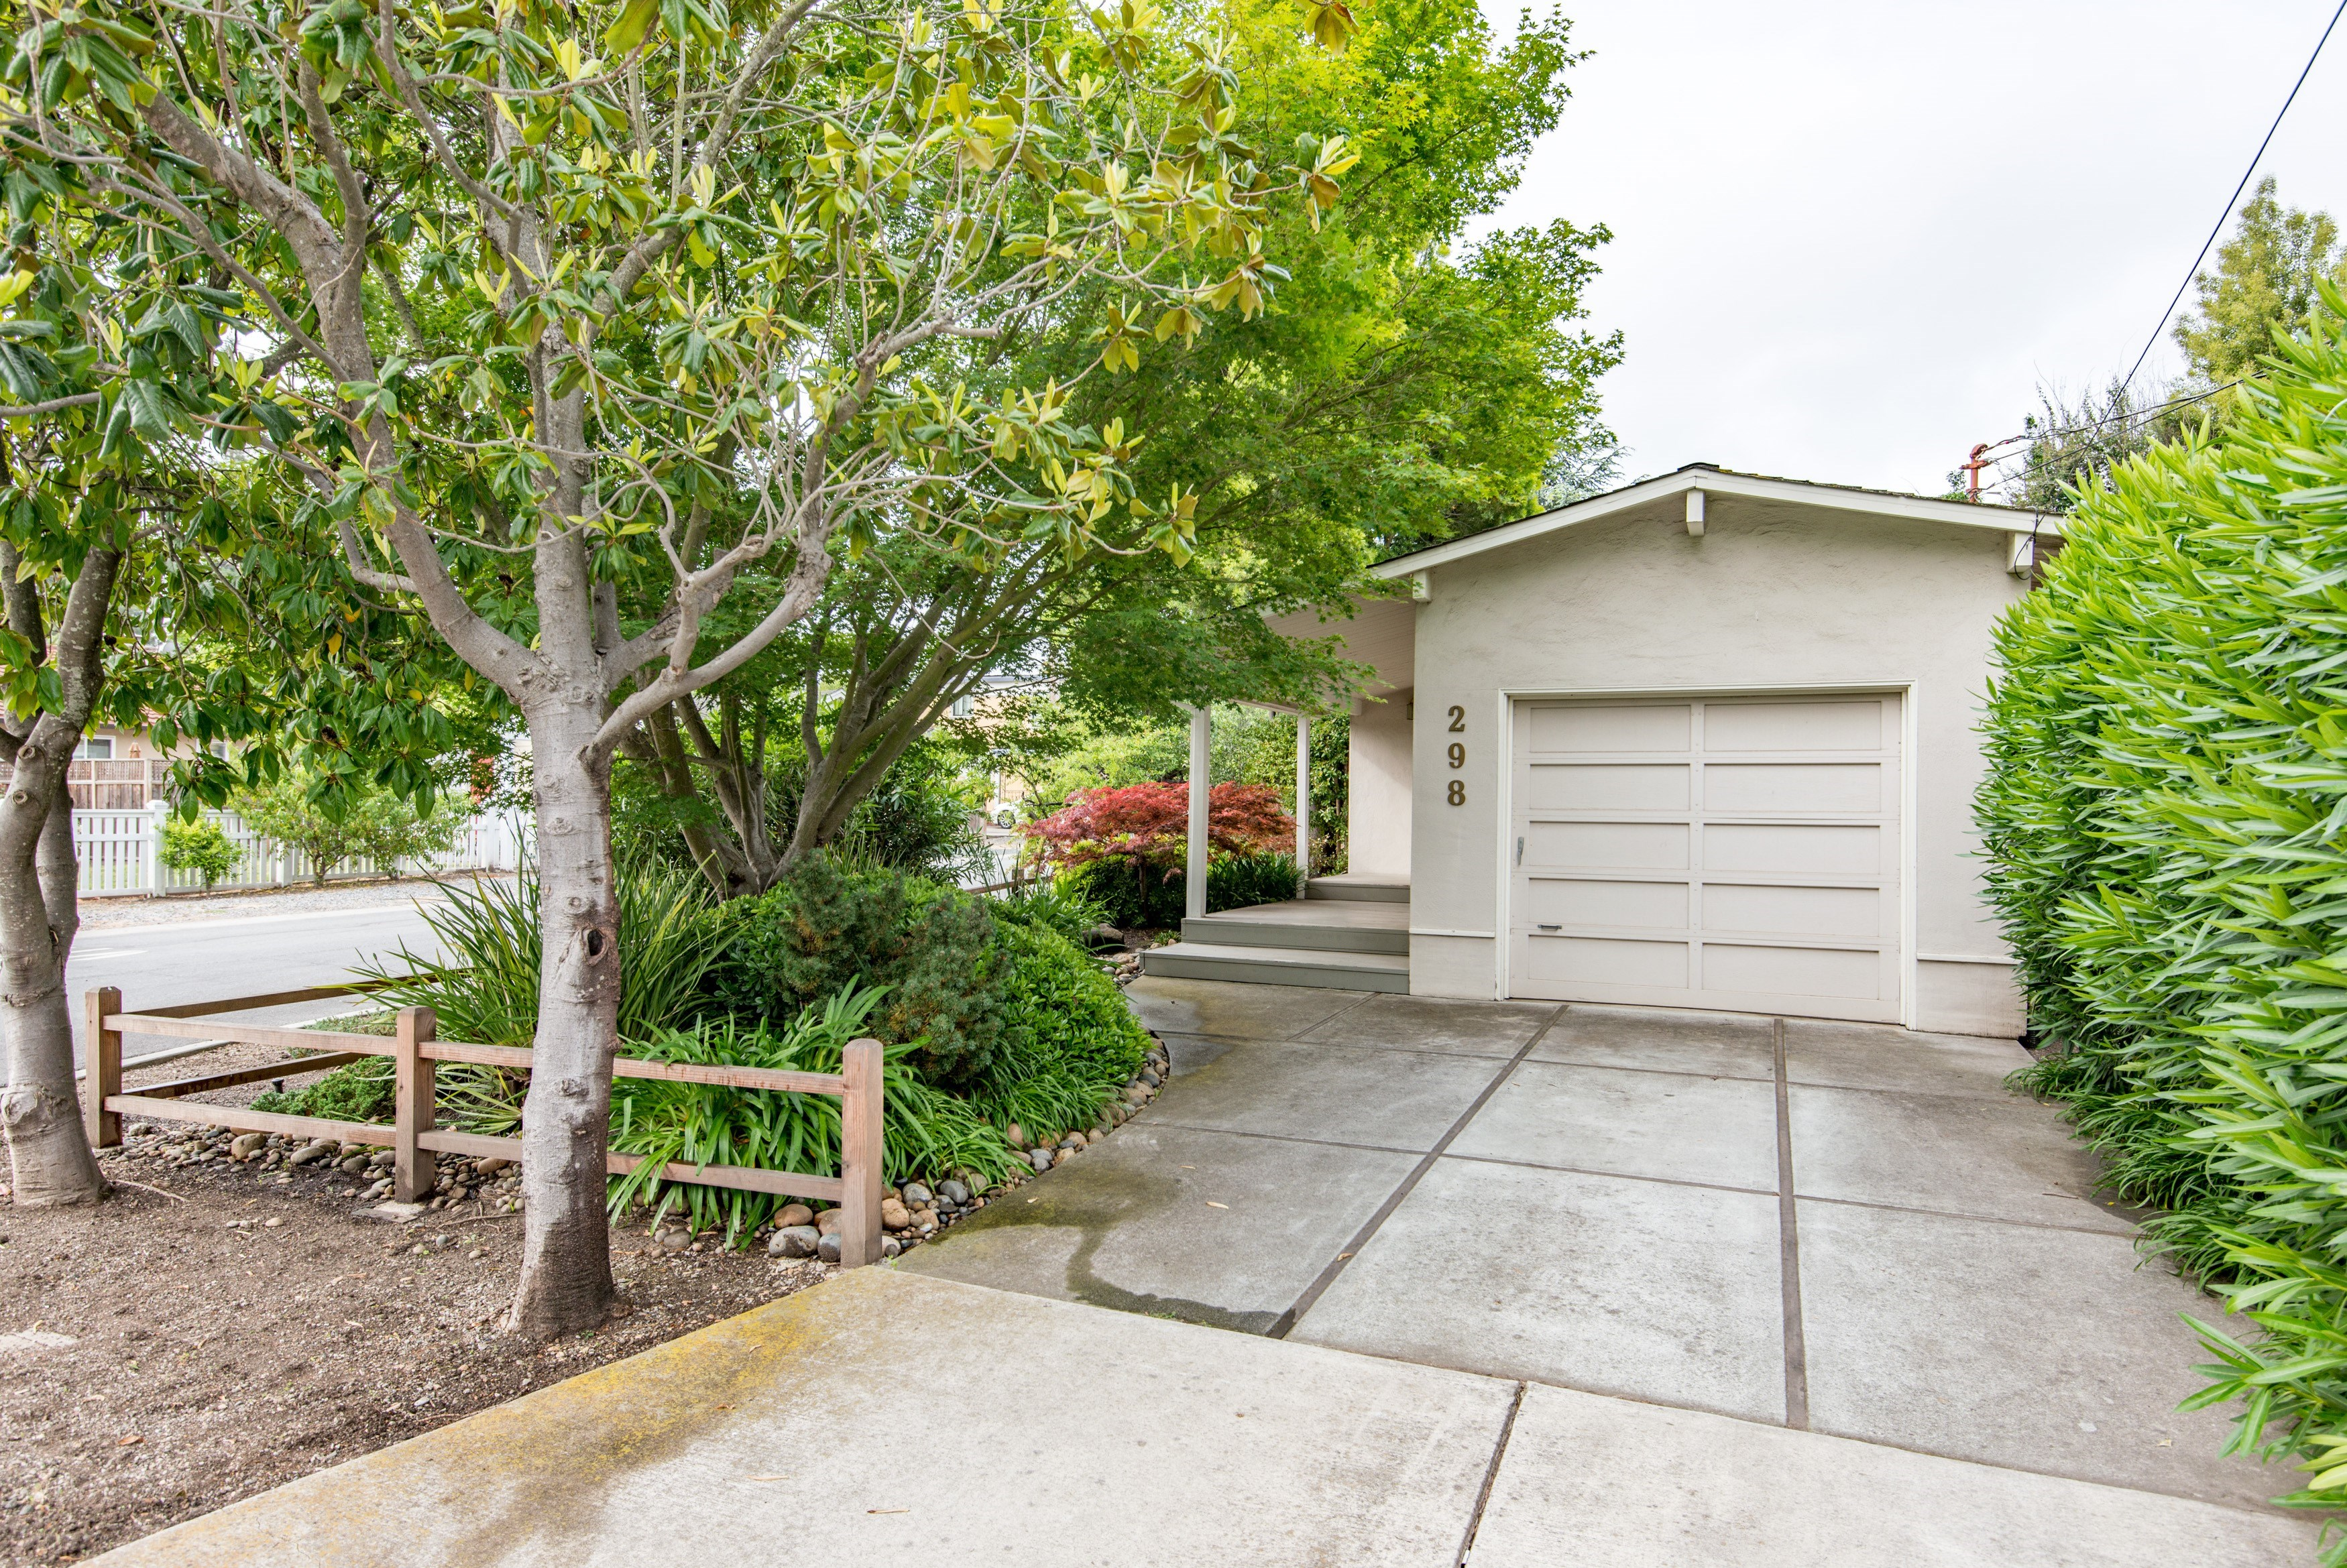 sales property at Prime Location – Quaint Cottage with beautiful low maintenance landscaping